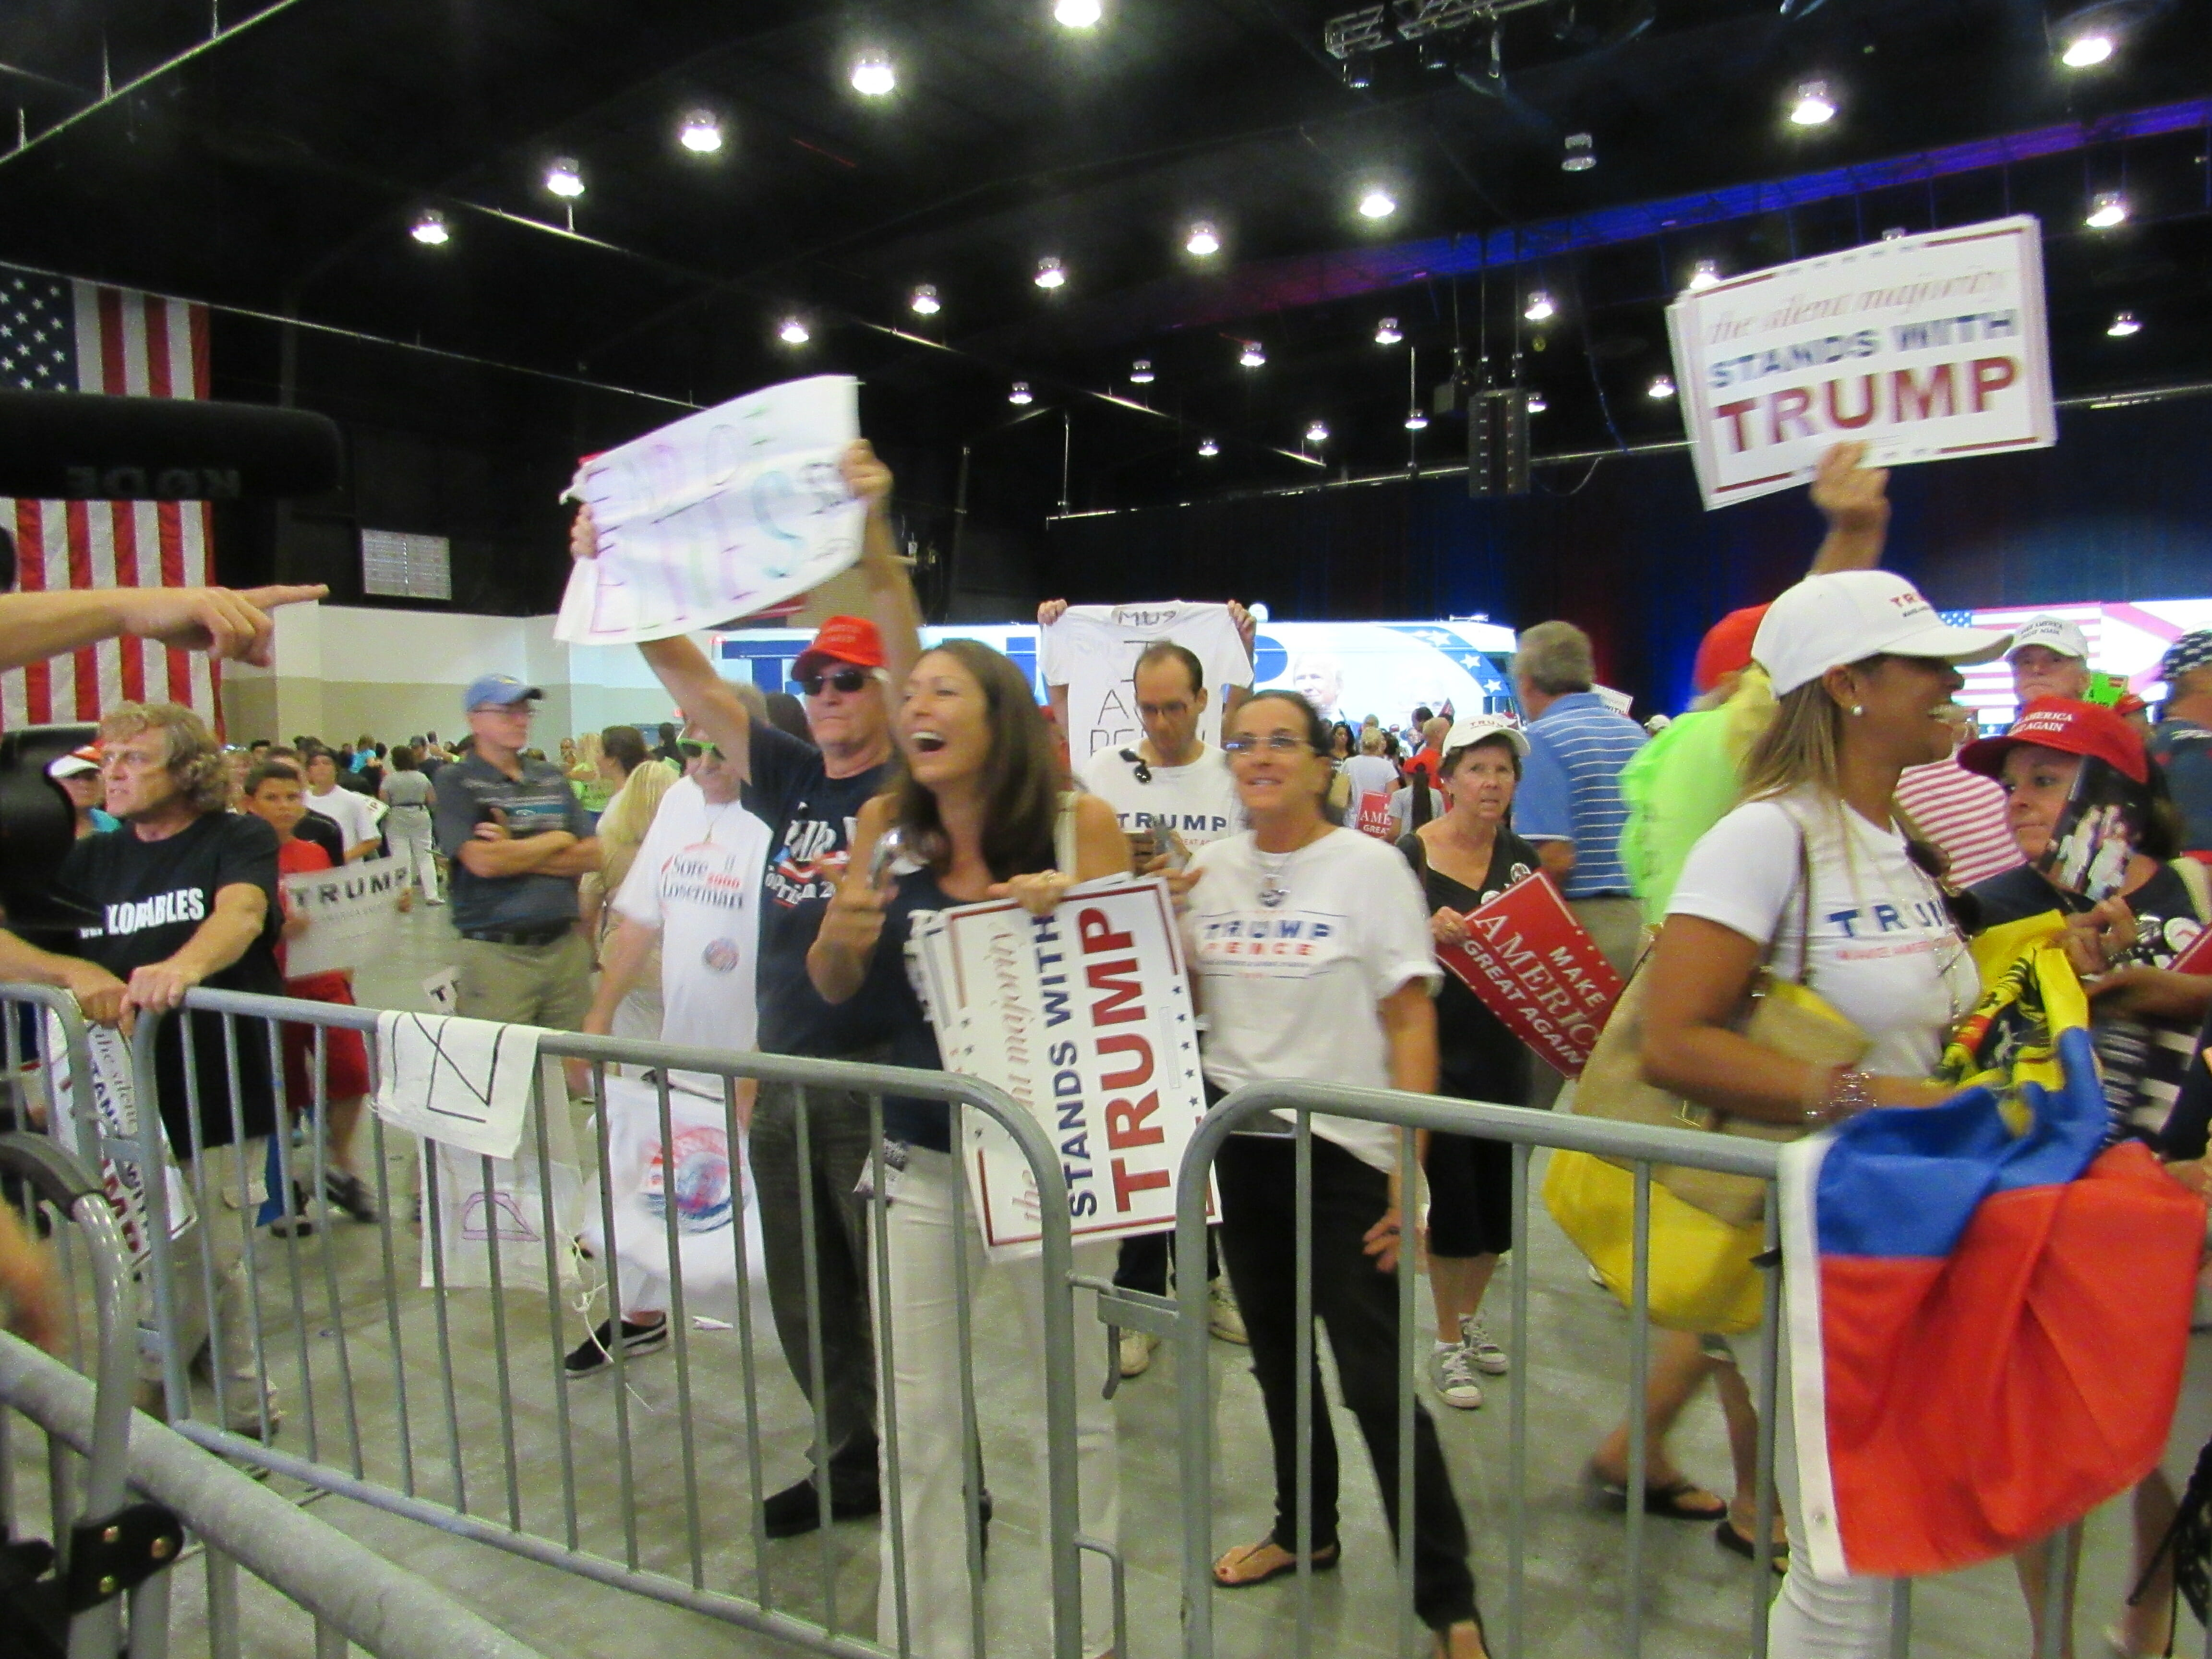 Trump supporters engage media after West Palm Beach rally